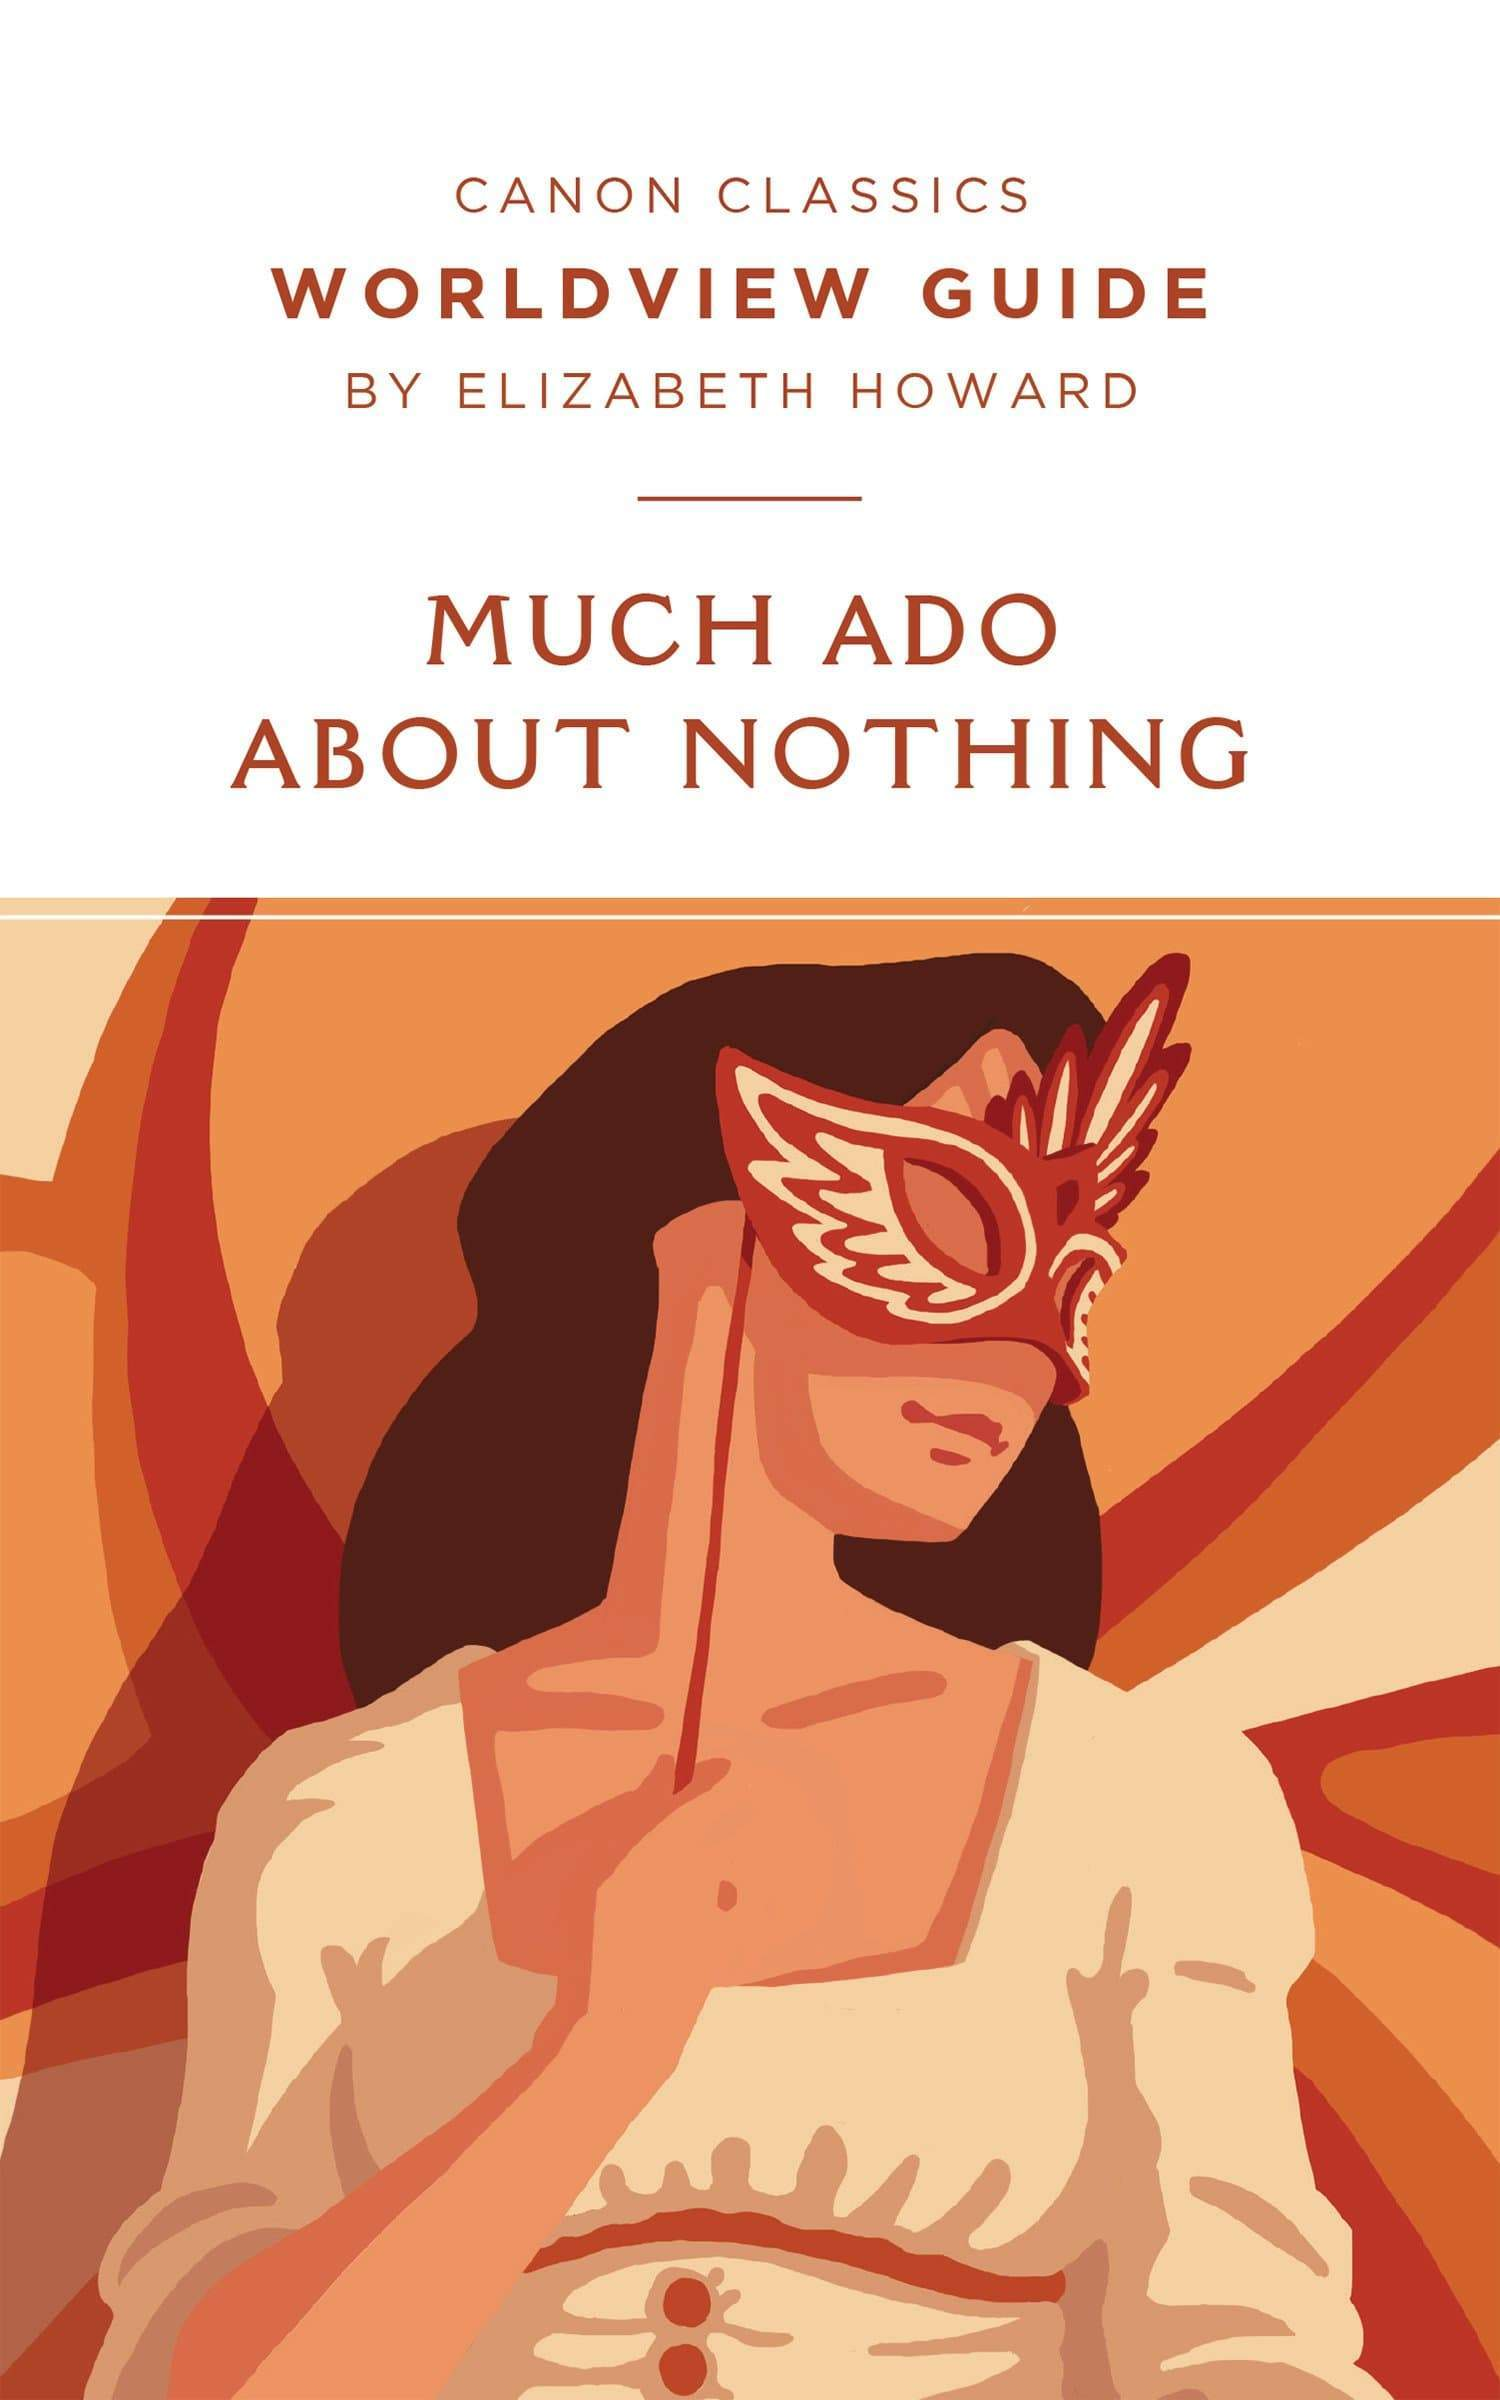 Worldview Guide for Much Ado About Nothing